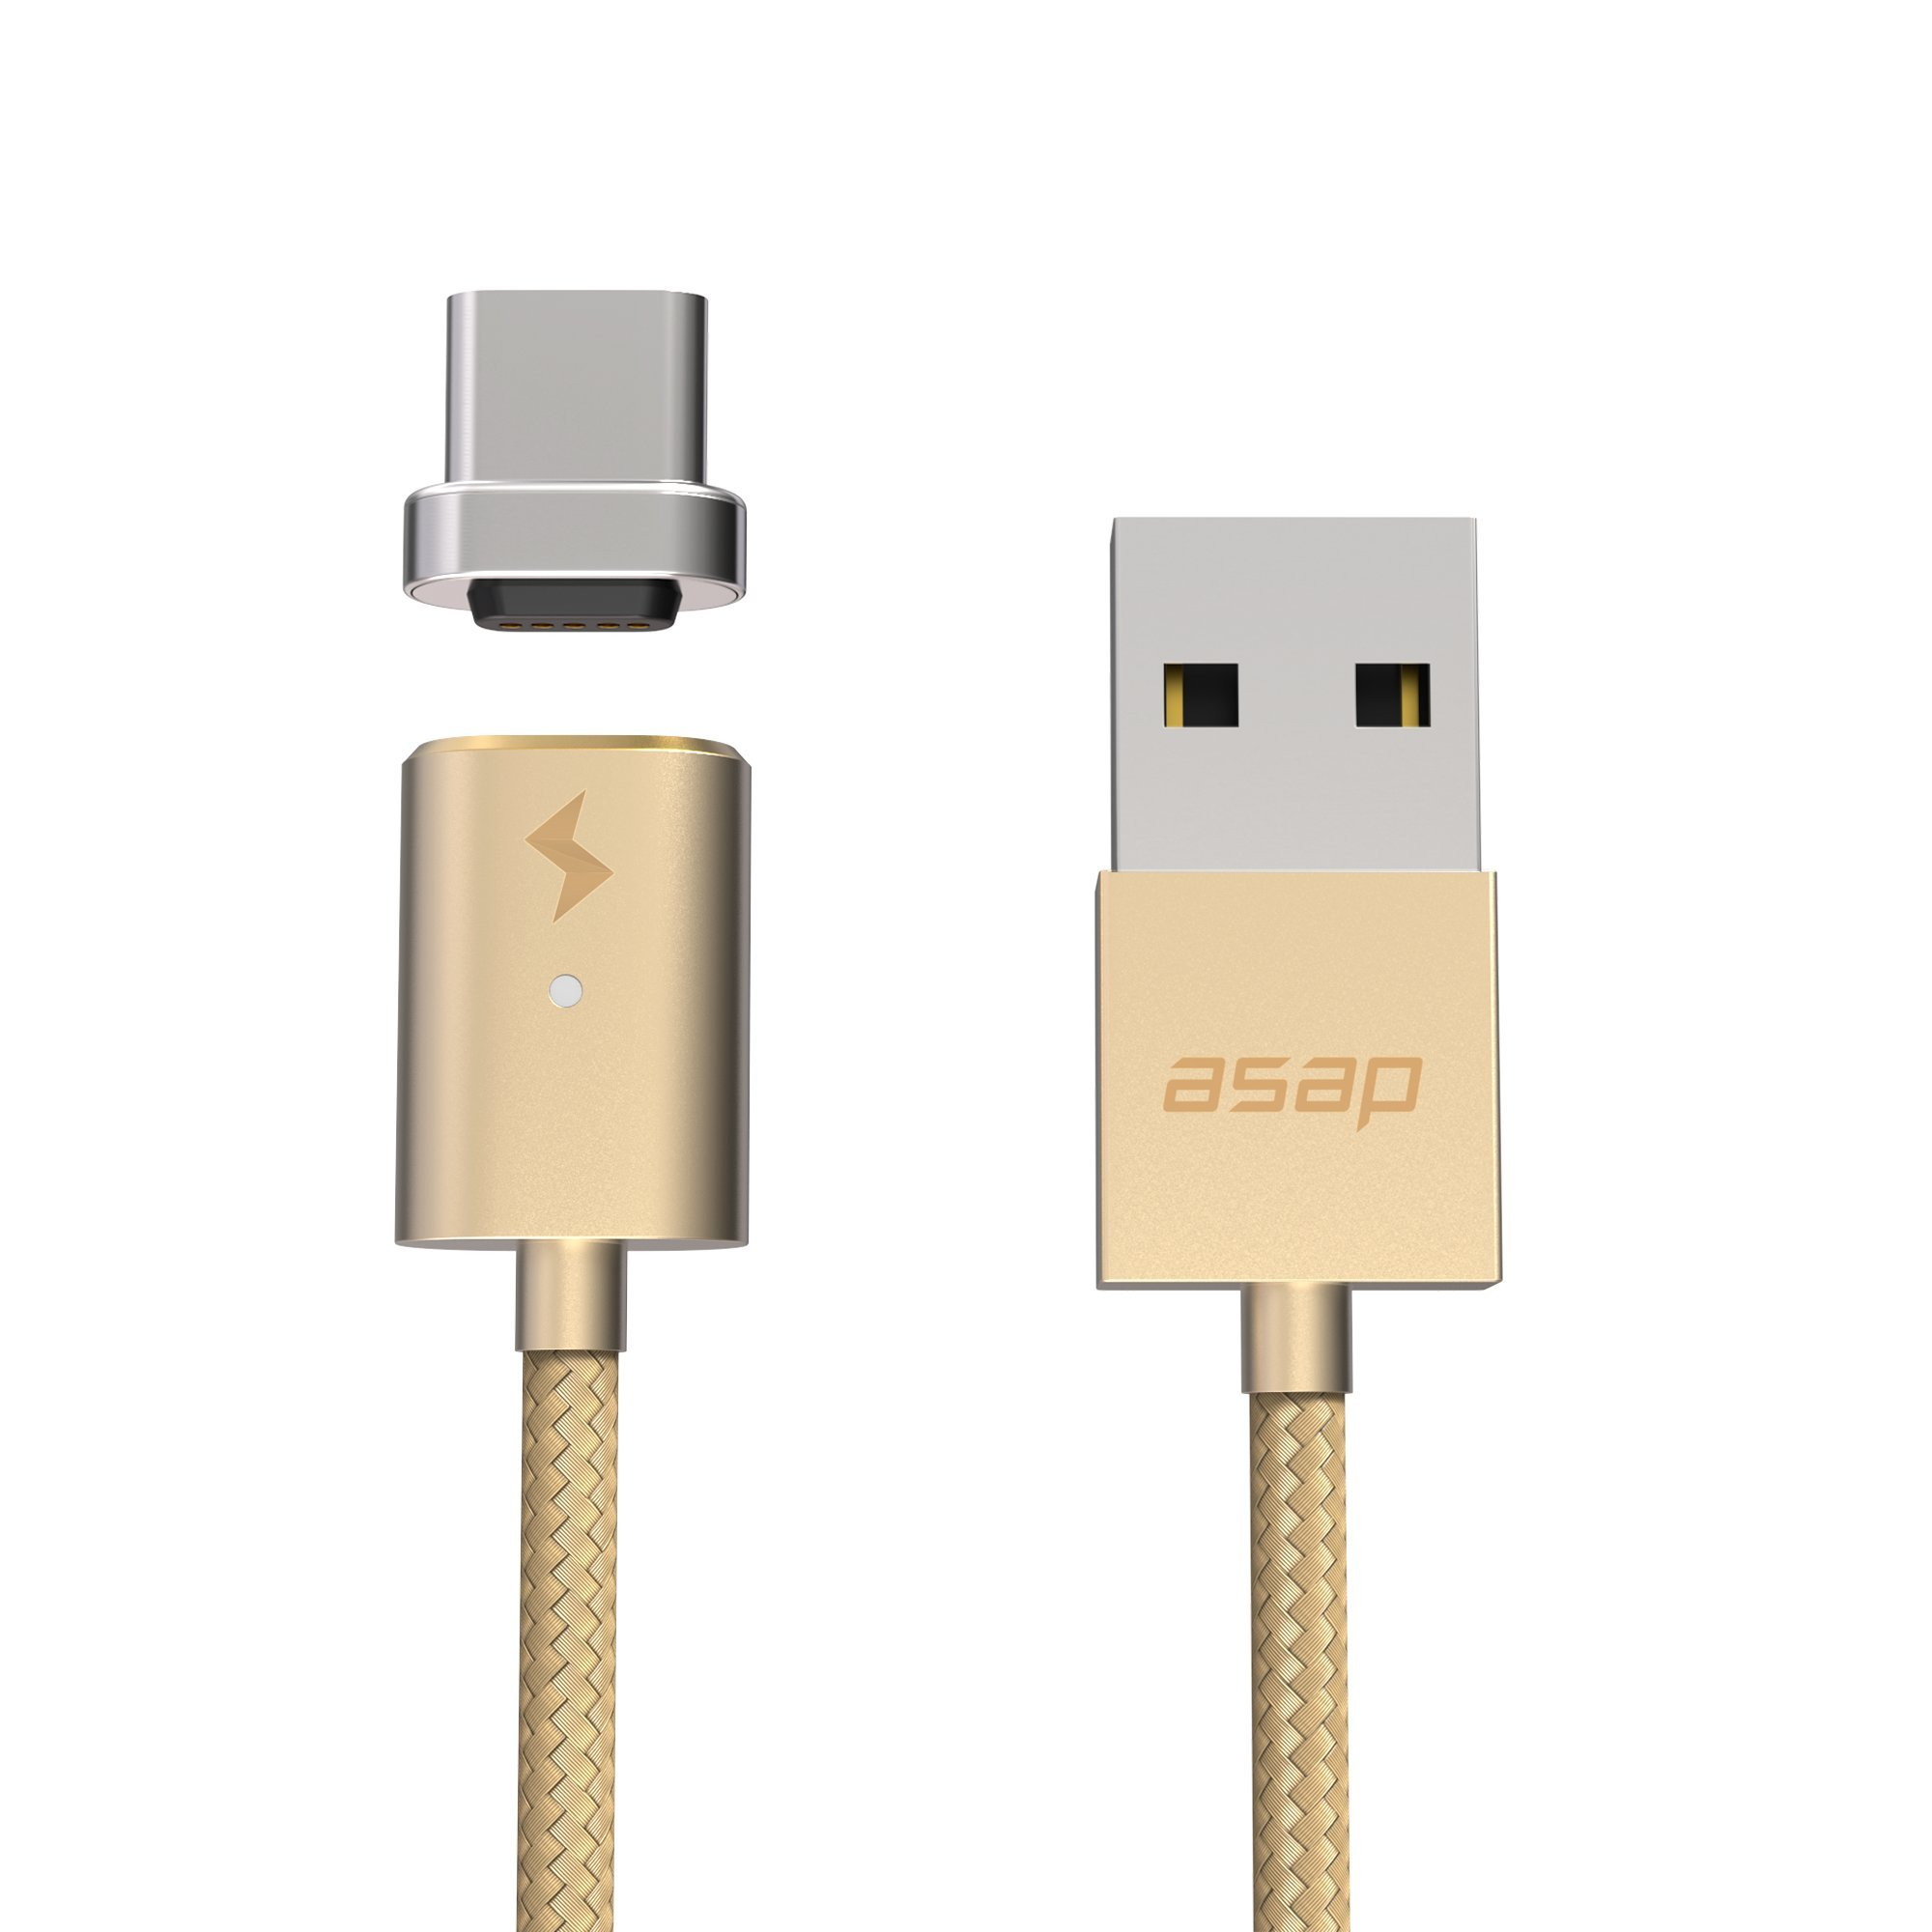 ASAP X-Connect Cable set USB Type C Cross Device Compatible Magnetic Data Transfer Fast Charge 3.94ft Cable